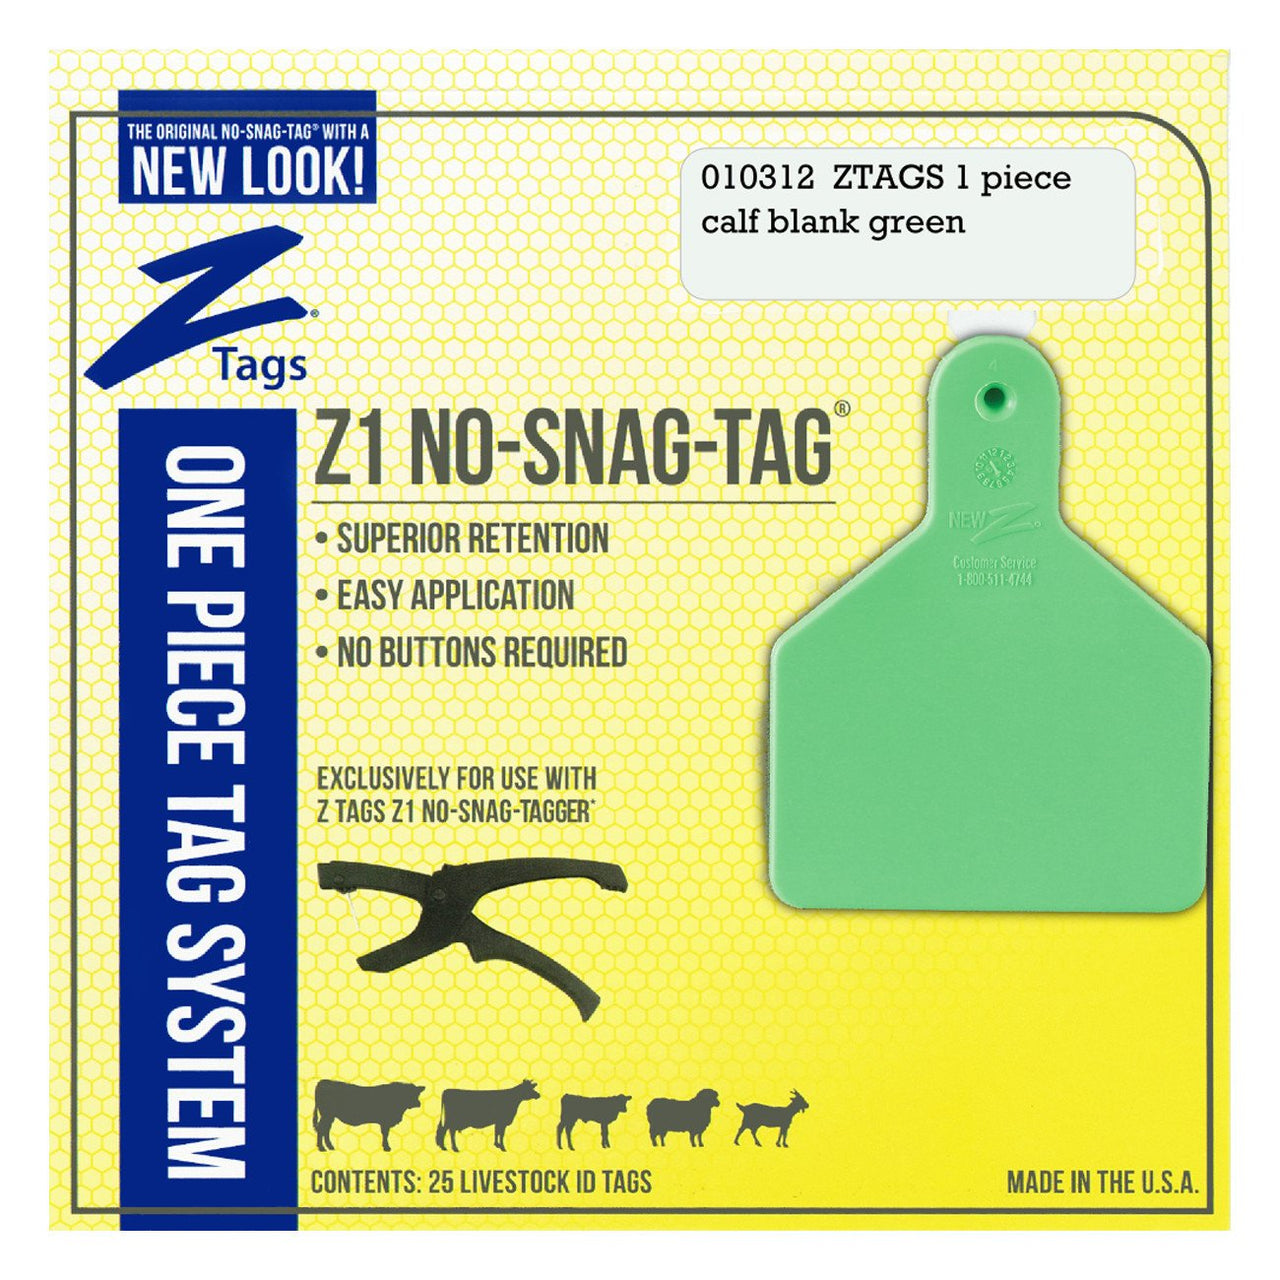 Z Tags 1 Piece Calf Blank (Green) 25 Pack - 1 Piece Short Neck Calf Blank Tag Z Tags - Canada